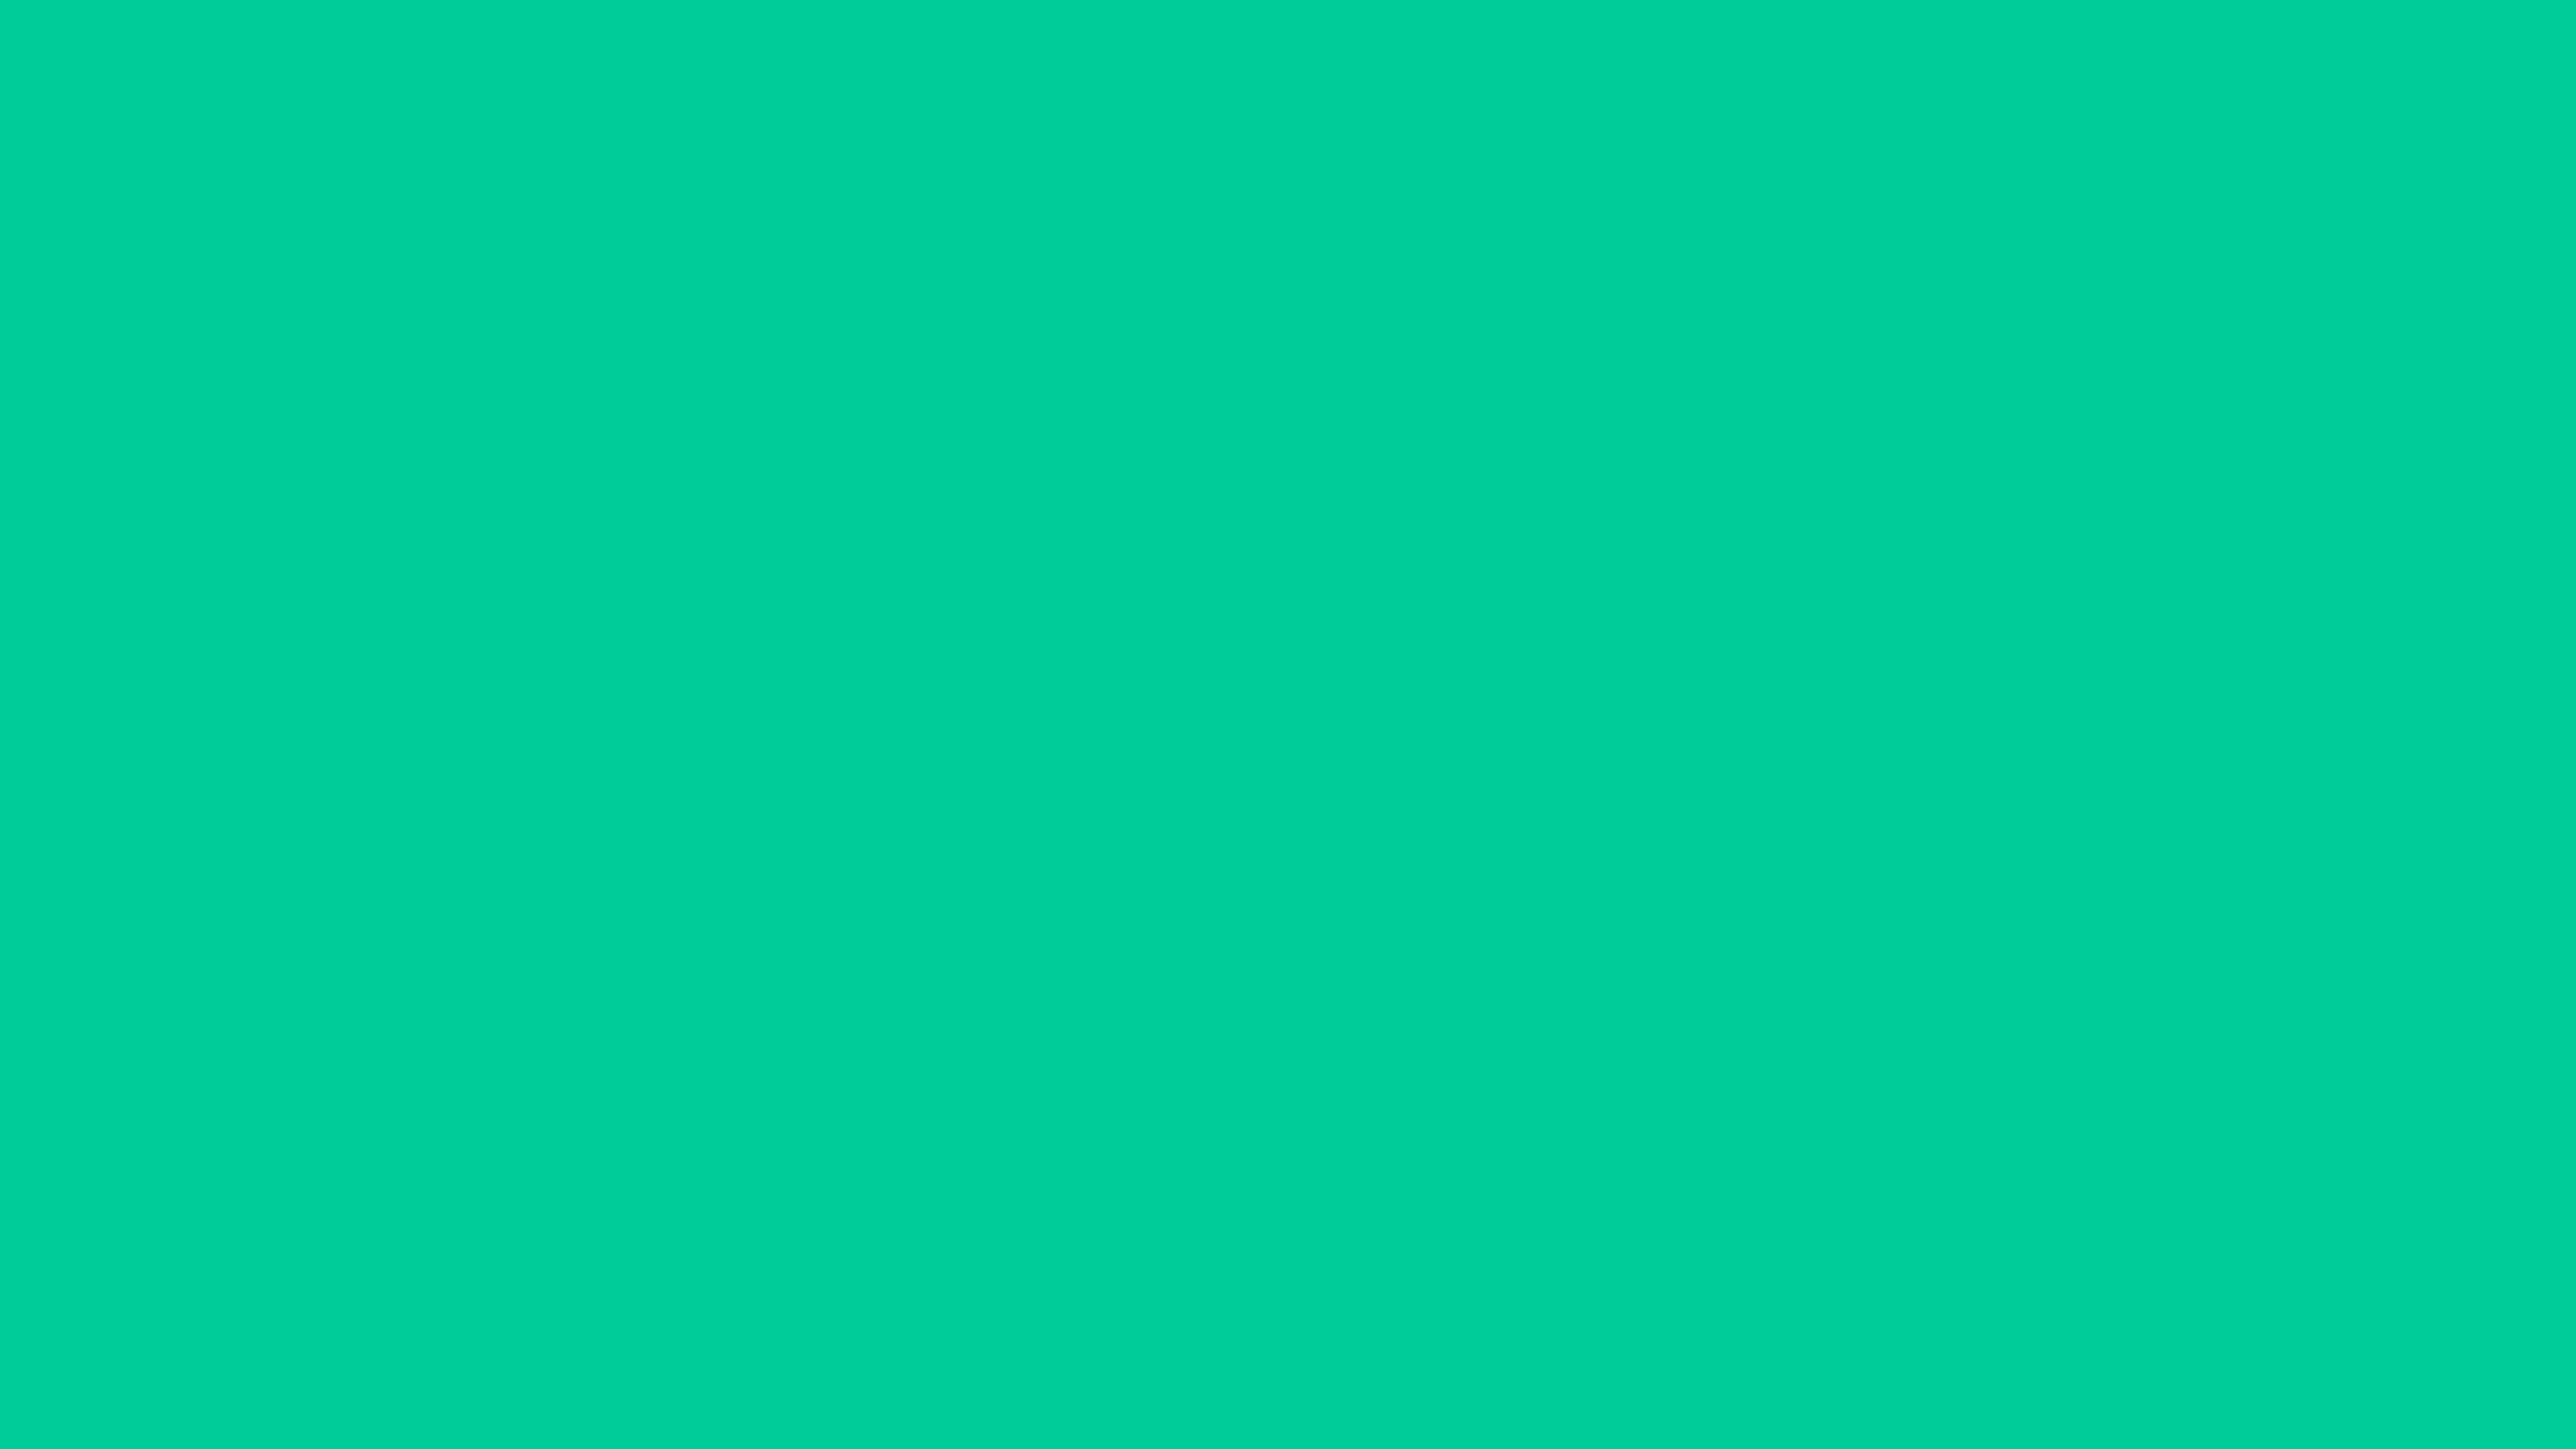 3840x2160 Caribbean Green Solid Color Background